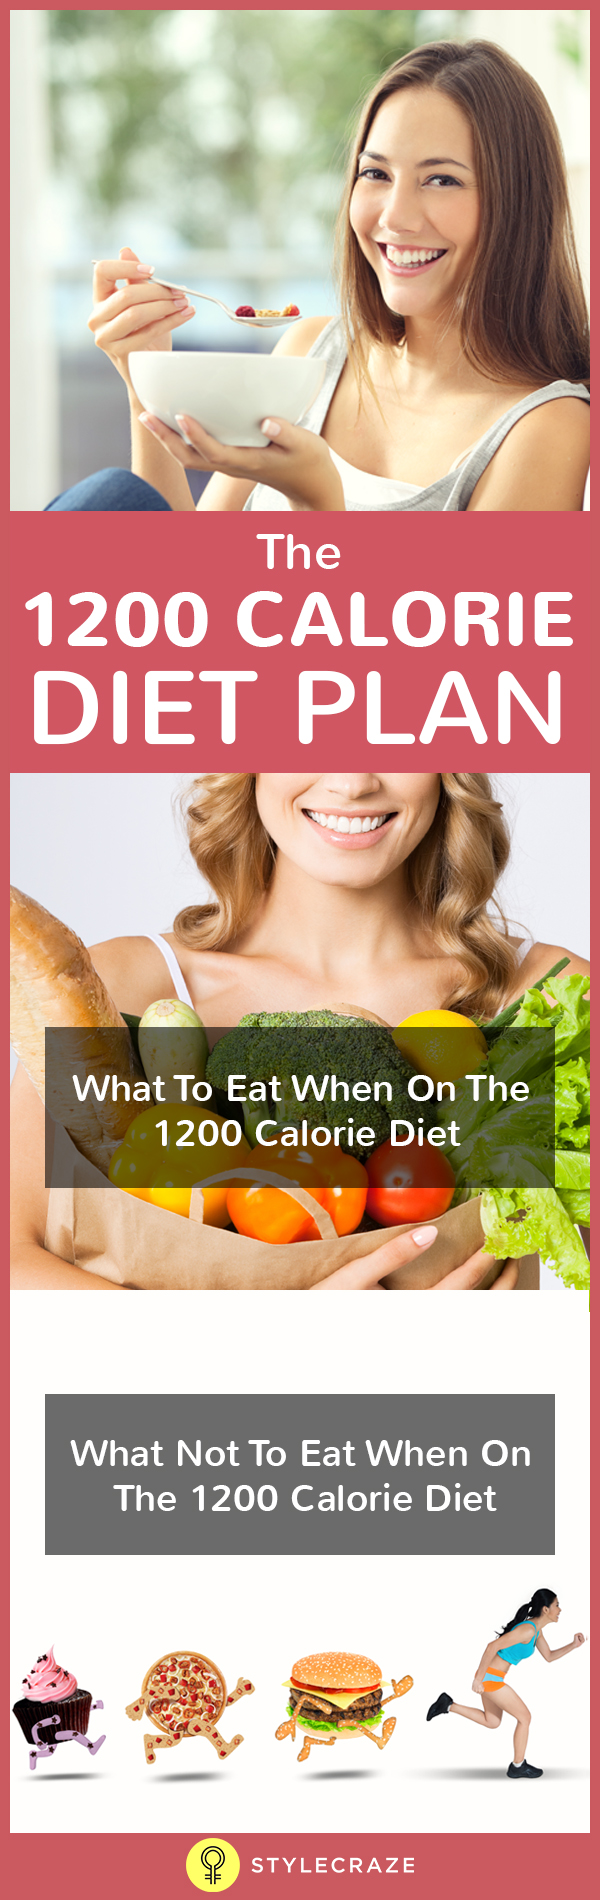 The 1200 calorie diet plan